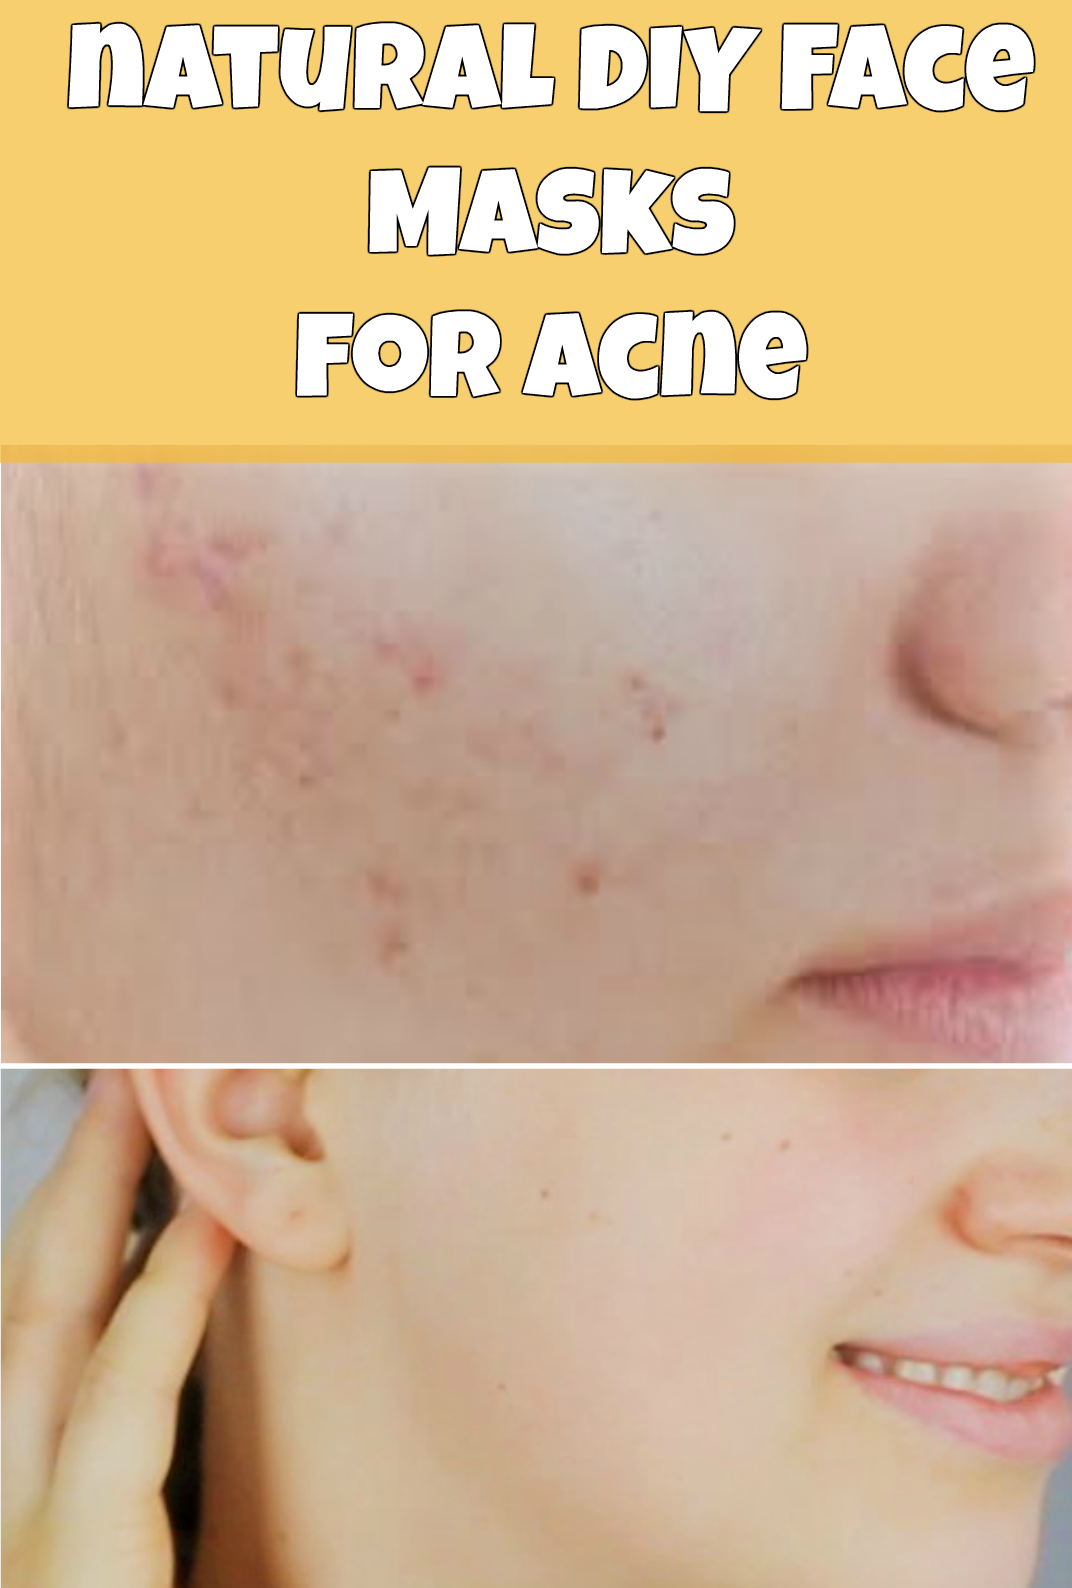 Natural Diy Face Masks For Acne Face Masks Acne Acne Prone